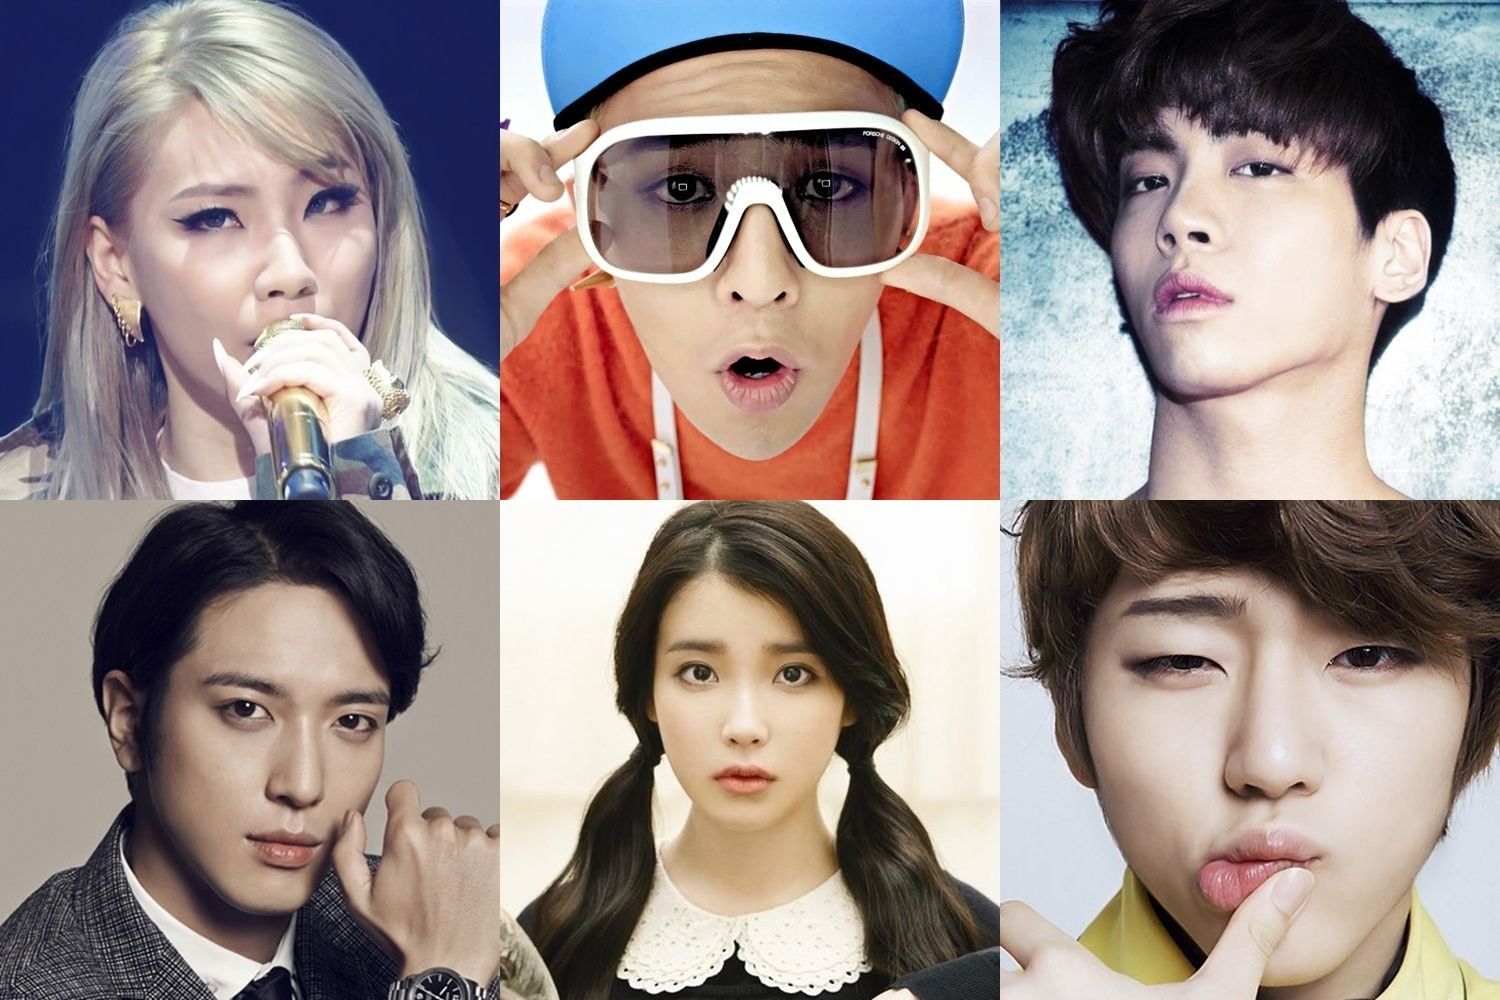 K Pop Idols As Artists Songs You Didn T Know They Made Songs Kpop Idol Kpop